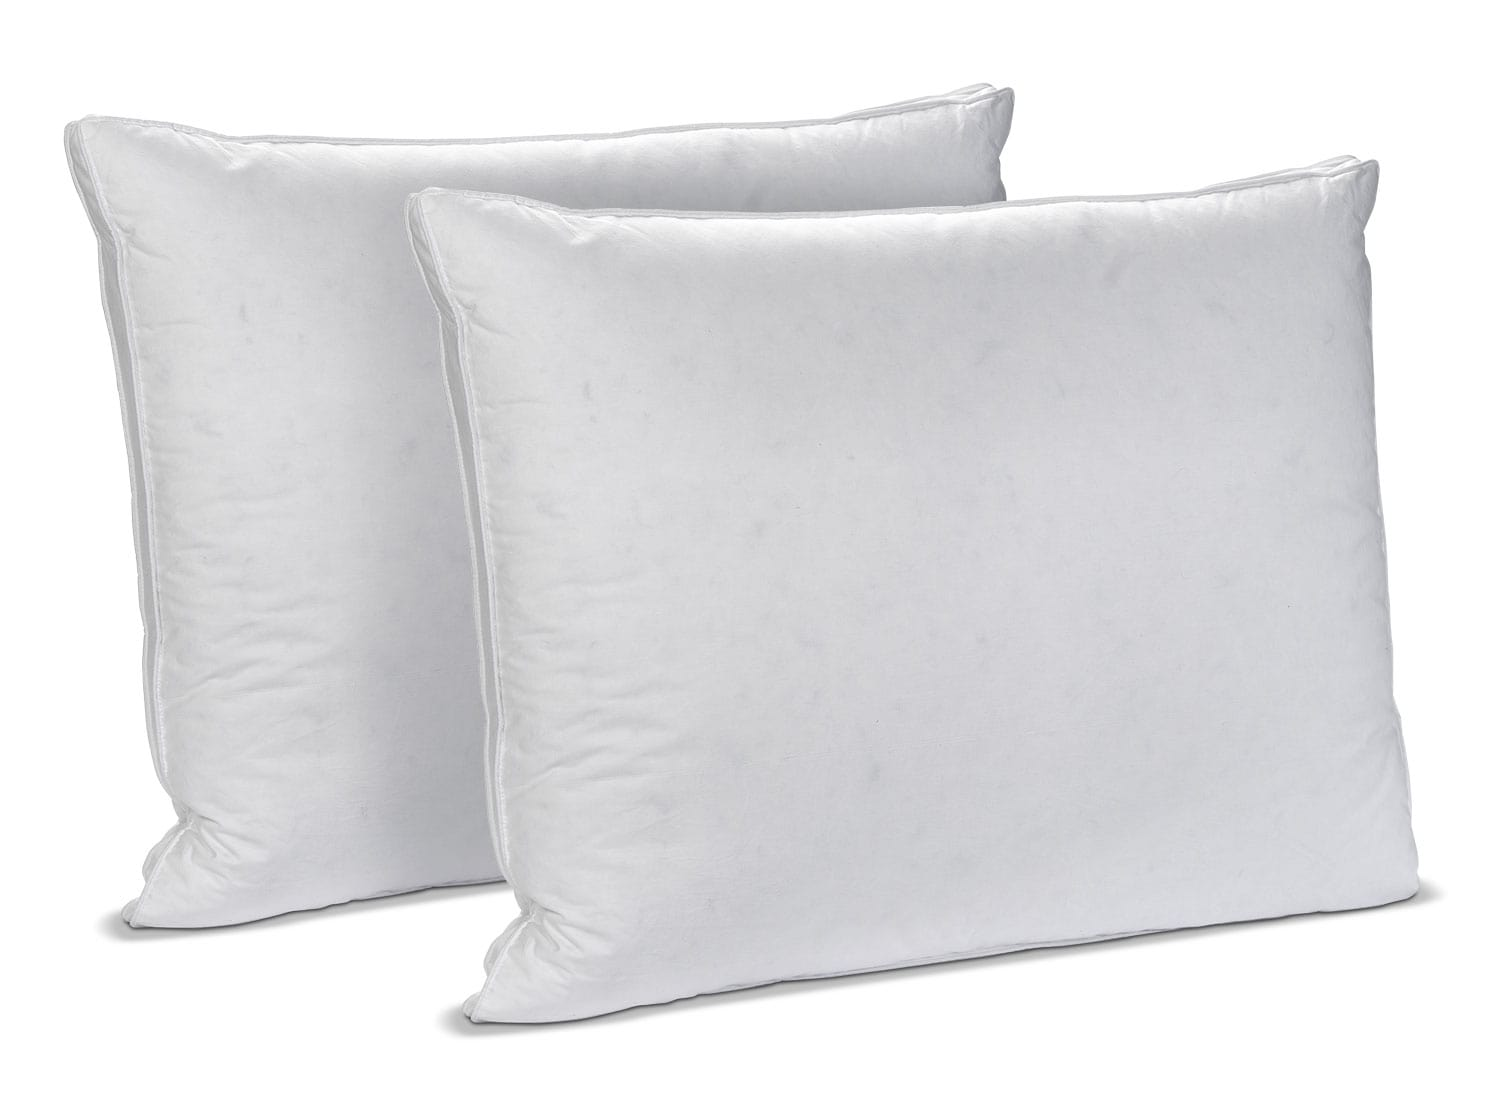 Mattresses and Bedding - Ergo Down 2 Pc. Pillow Set